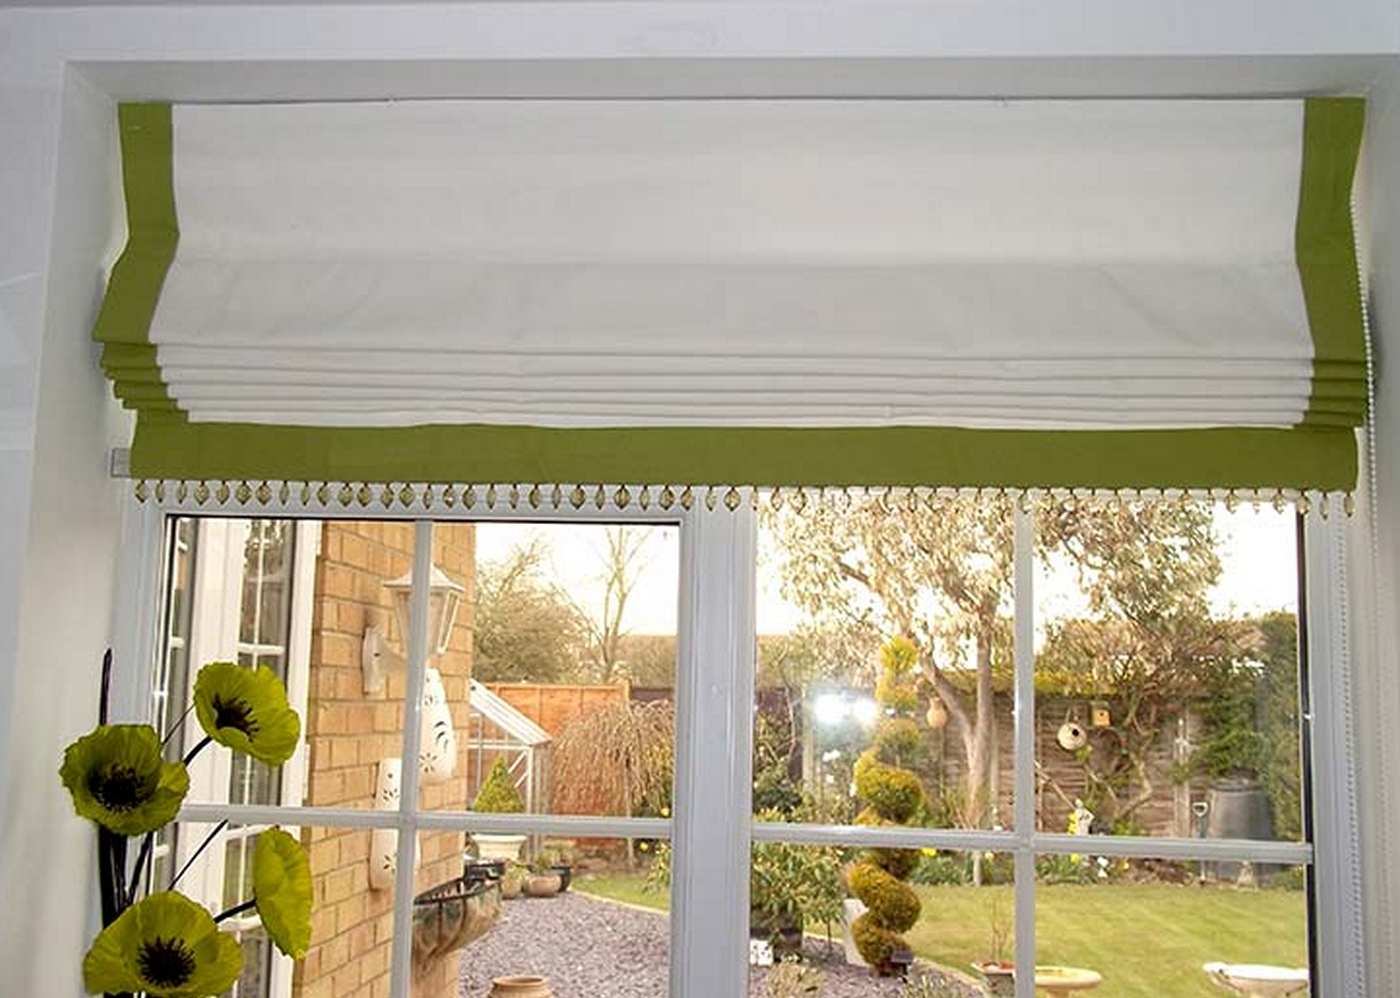 Blinds Middlesbrough Blinds Middlesbrough Conservatory Blinds With Green Roman Blinds (Image 4 of 15)